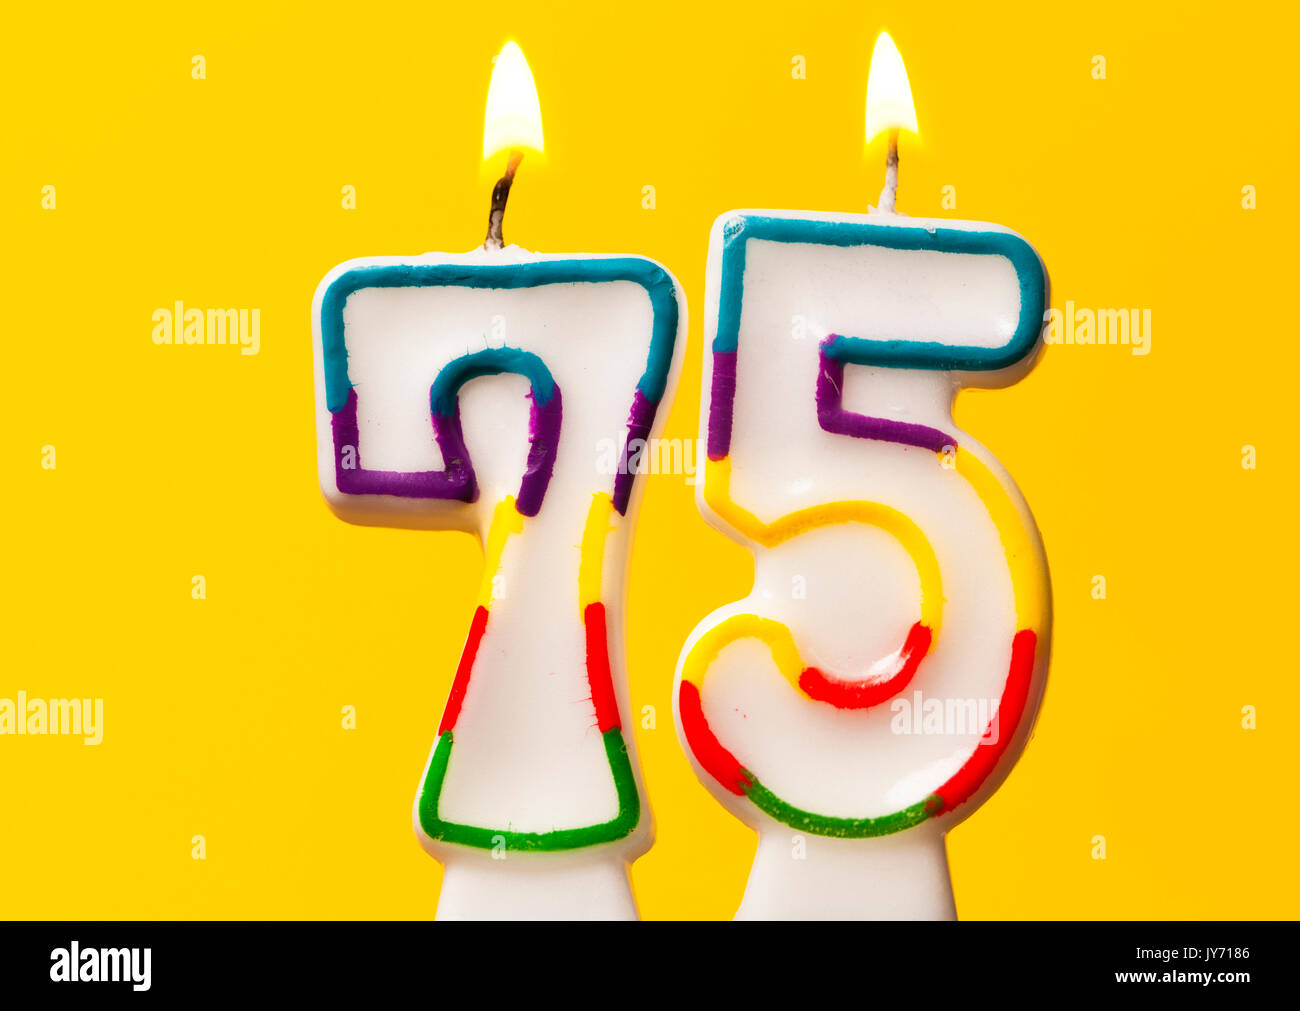 Number 75 Birthday Celebration Candle Against A Bright Yellow Background